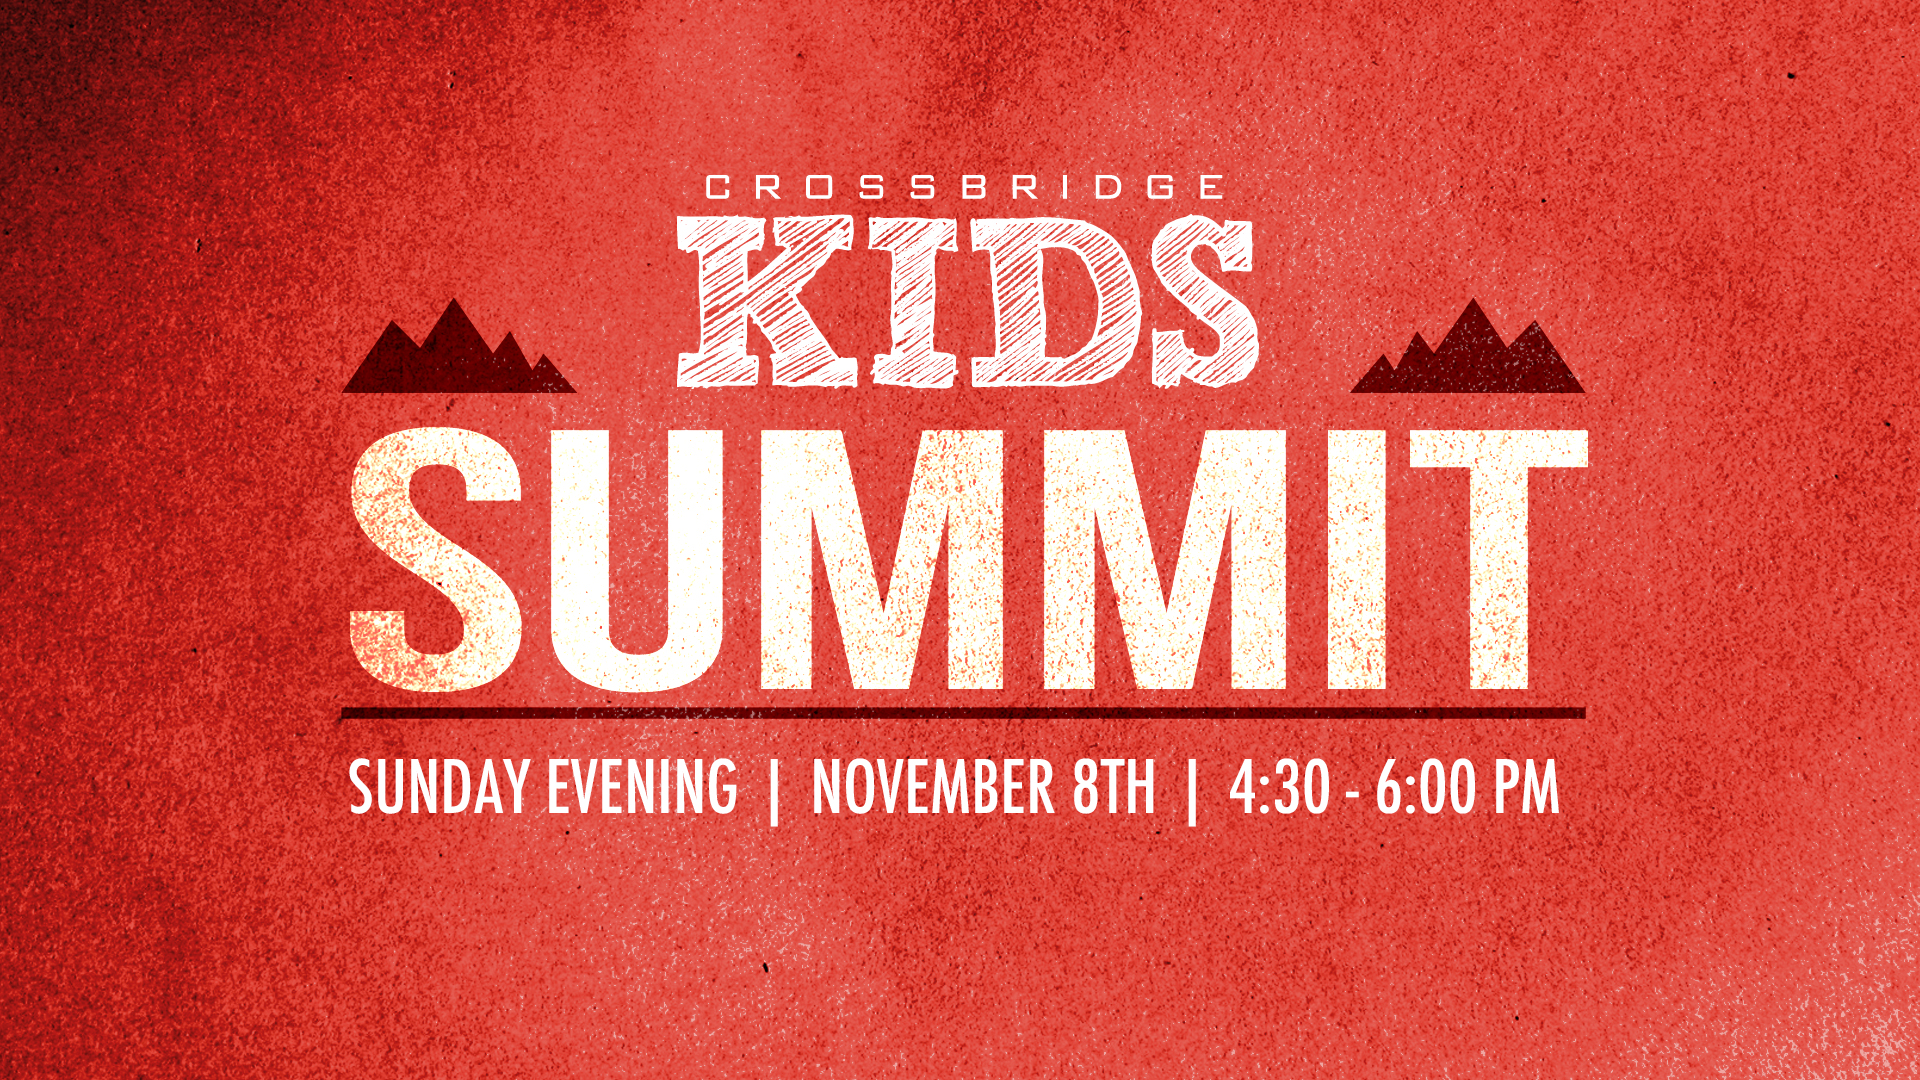 CROSSBRIDGE KIDS SUMMIT - November 8 I 4:30-6:00 PM  The annual Summit is a team meeting for all those who serve in Crossbridge Kids. This is an opportunity to hear from our new Children's Minister, Jennifer Krupa and an invaluable training on how to lead kids to Jesus in our Sunday morning environments. In the Auditorium. Don't miss it!